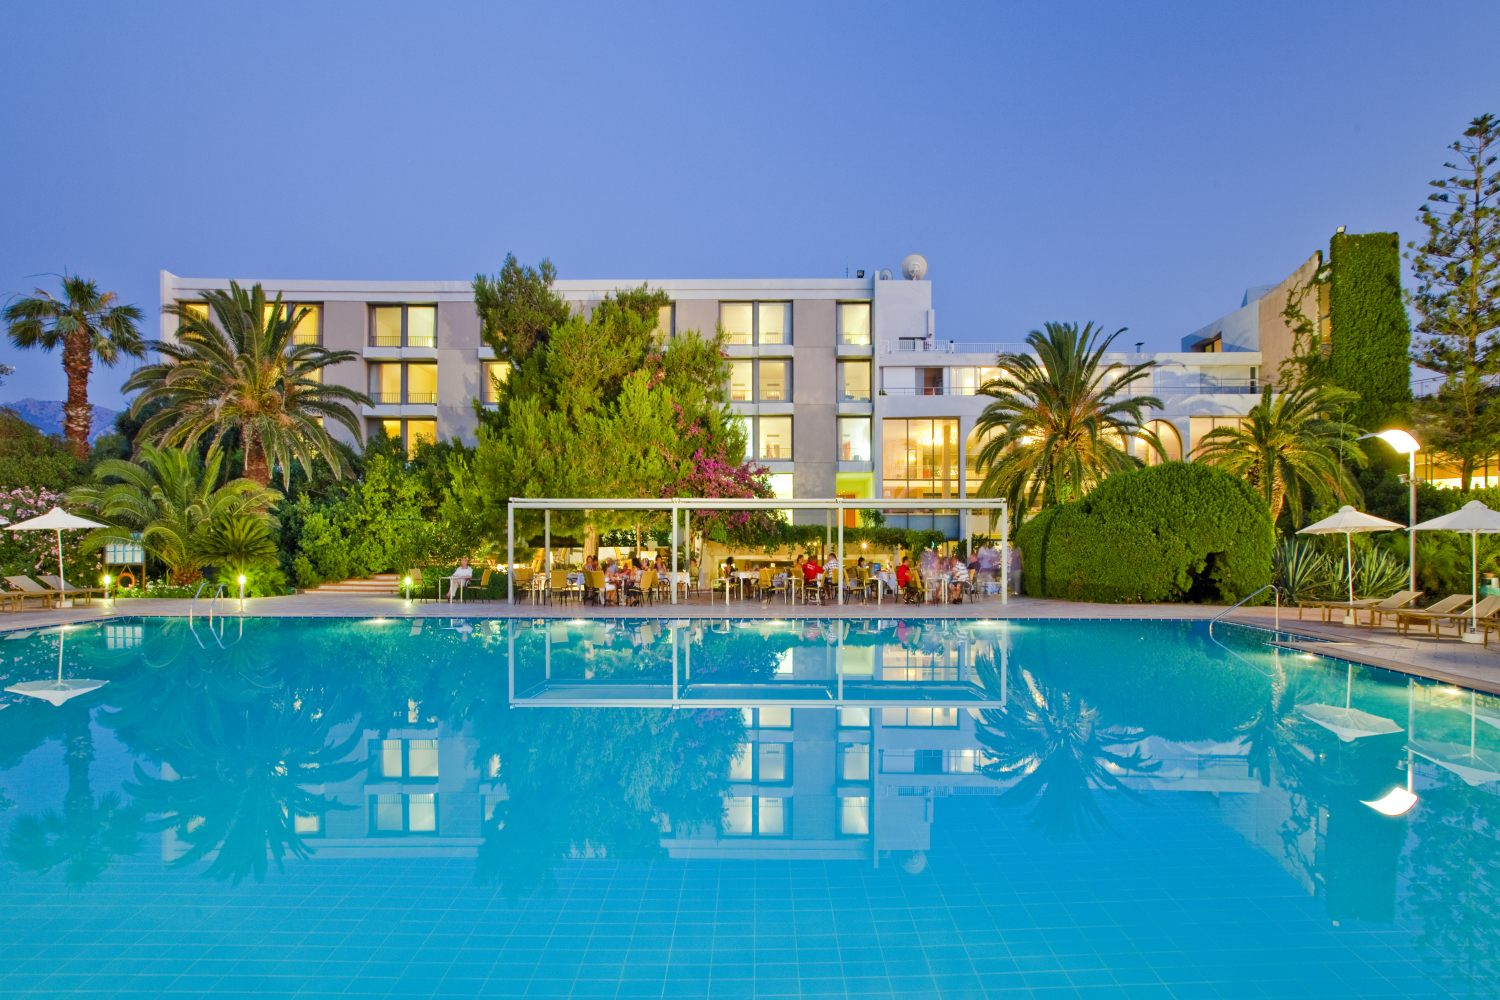 CARAVIA BEACH HOTEL & BUNGALOWS